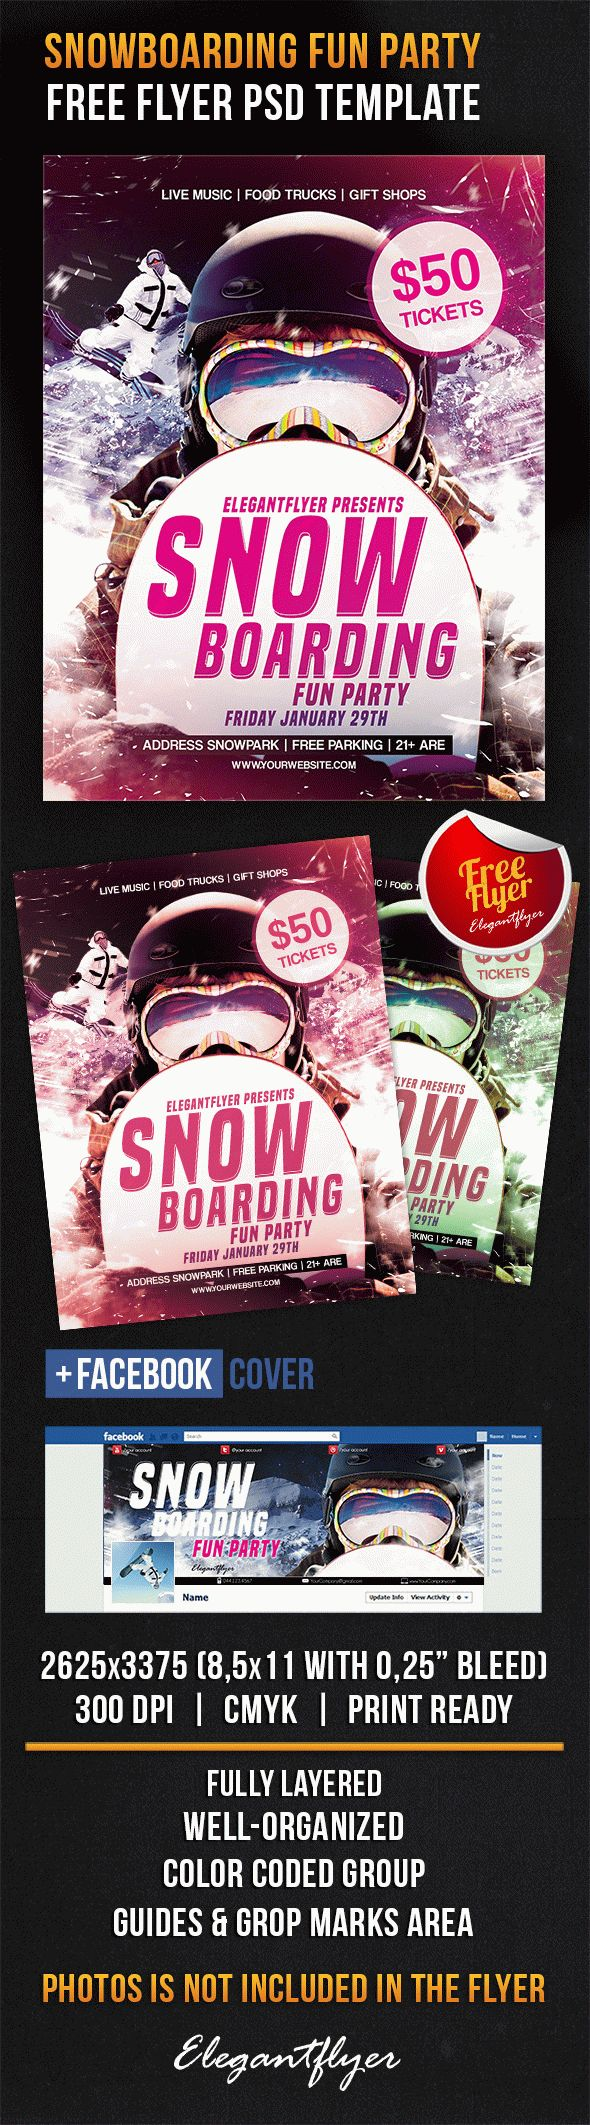 Snowboarding Fun Party – Free Flyer PSD Template + Facebook Cover